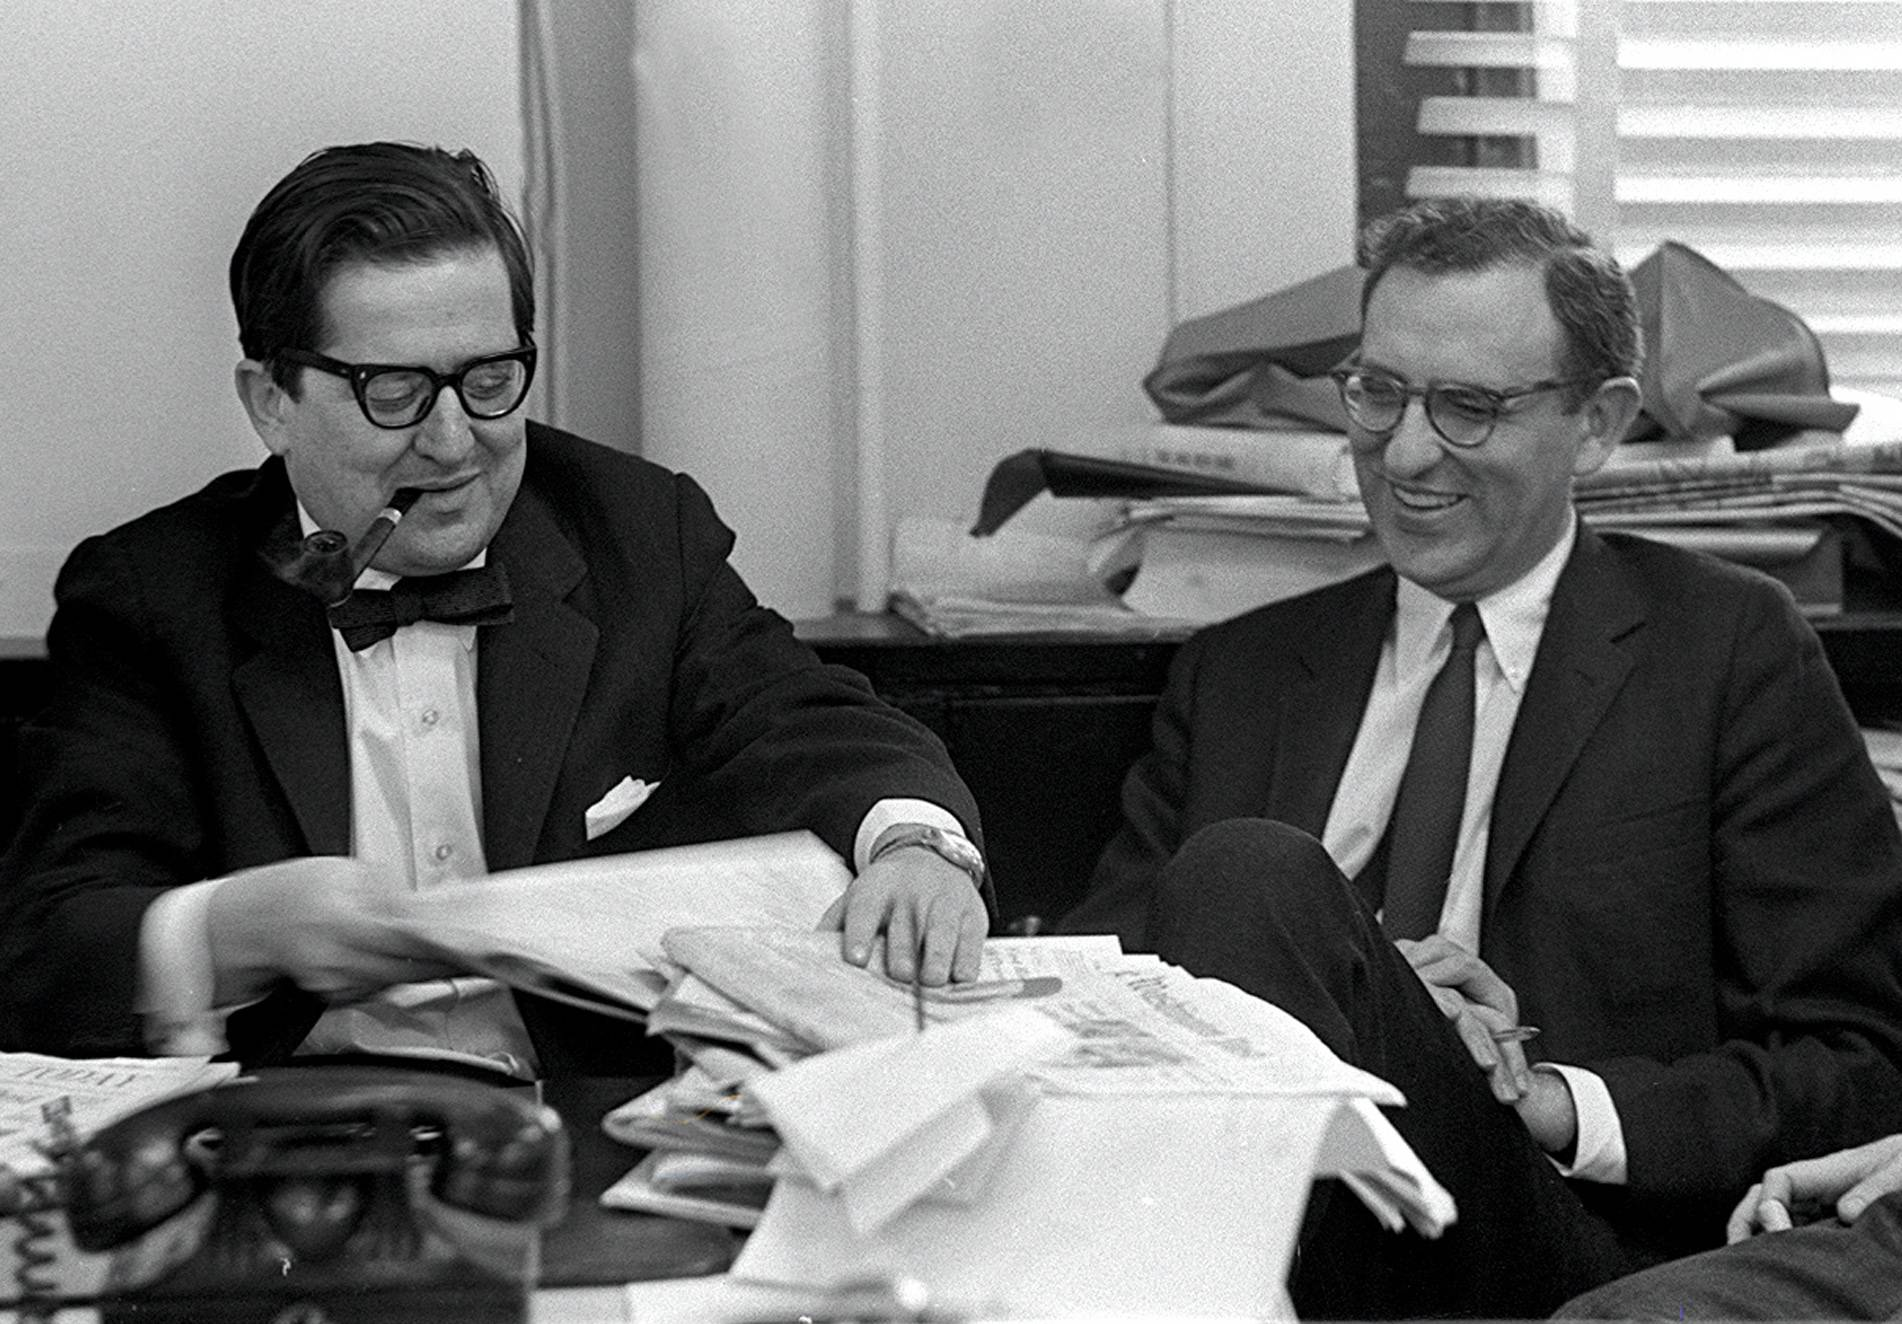 New York Time's editors A.M. Rosenthal, left and Arthur Gelb, are seated at a desk in Rosenthal's office.